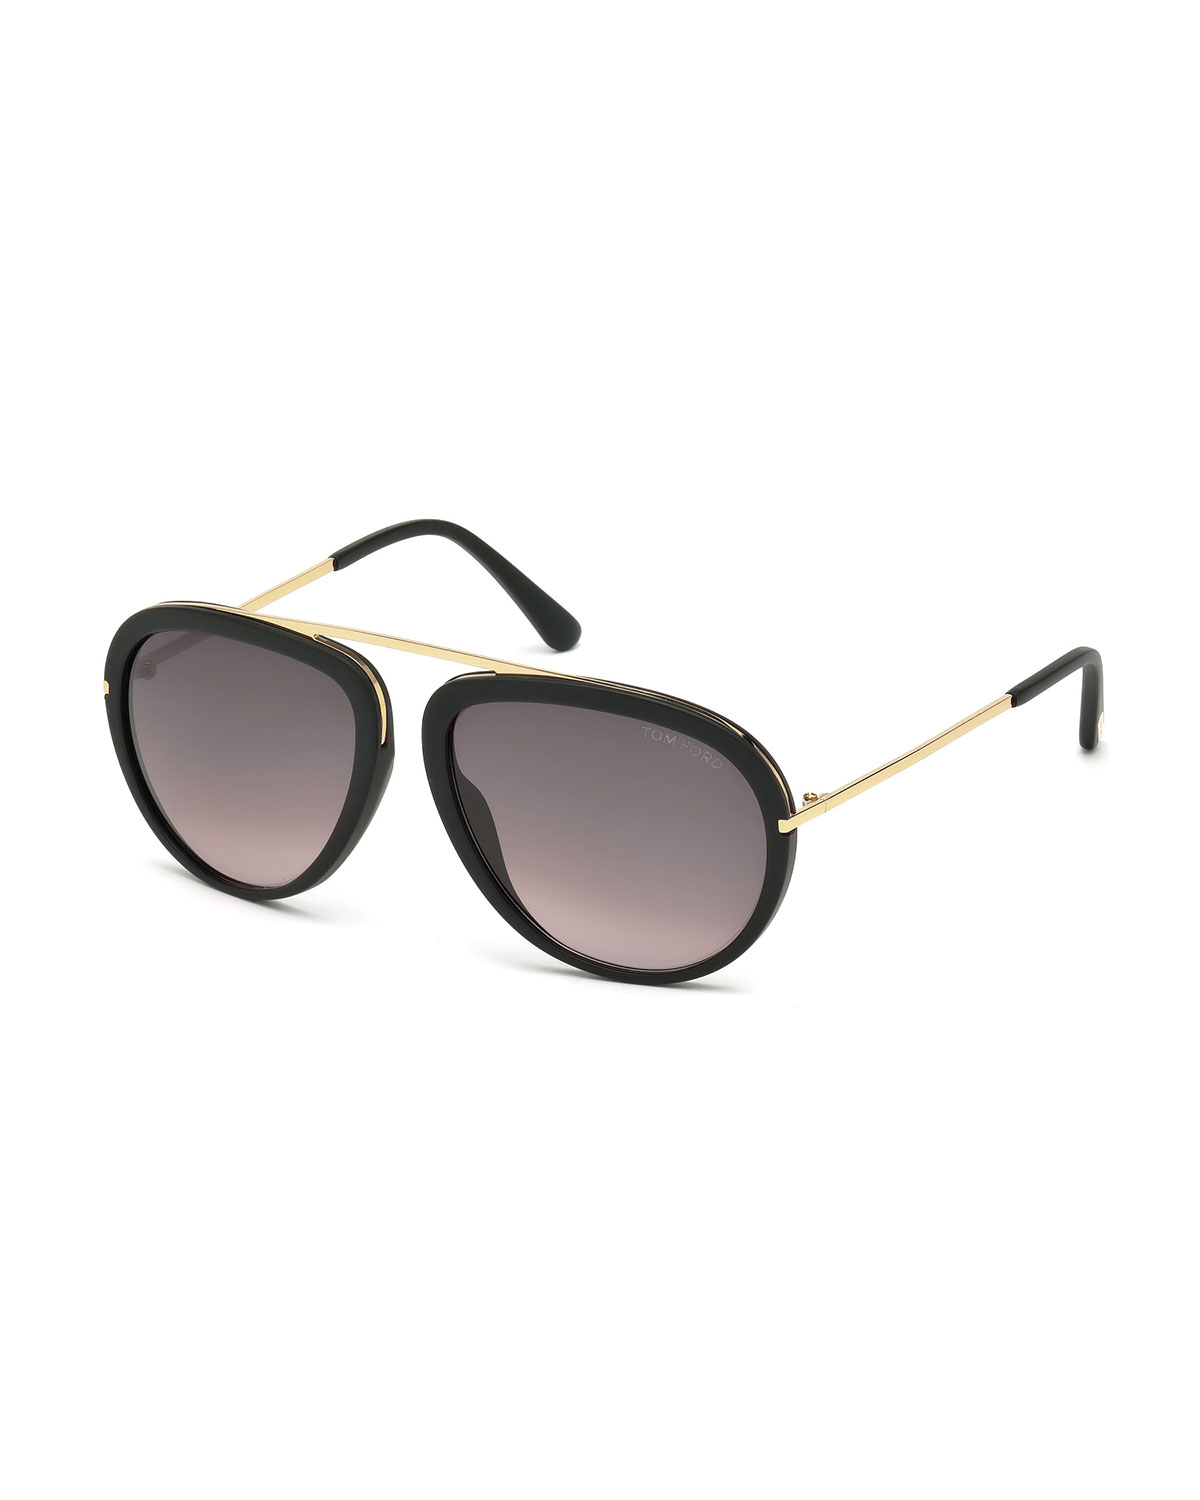 2aaededa44c5 Tom Ford Aviator Sunglasses Sale